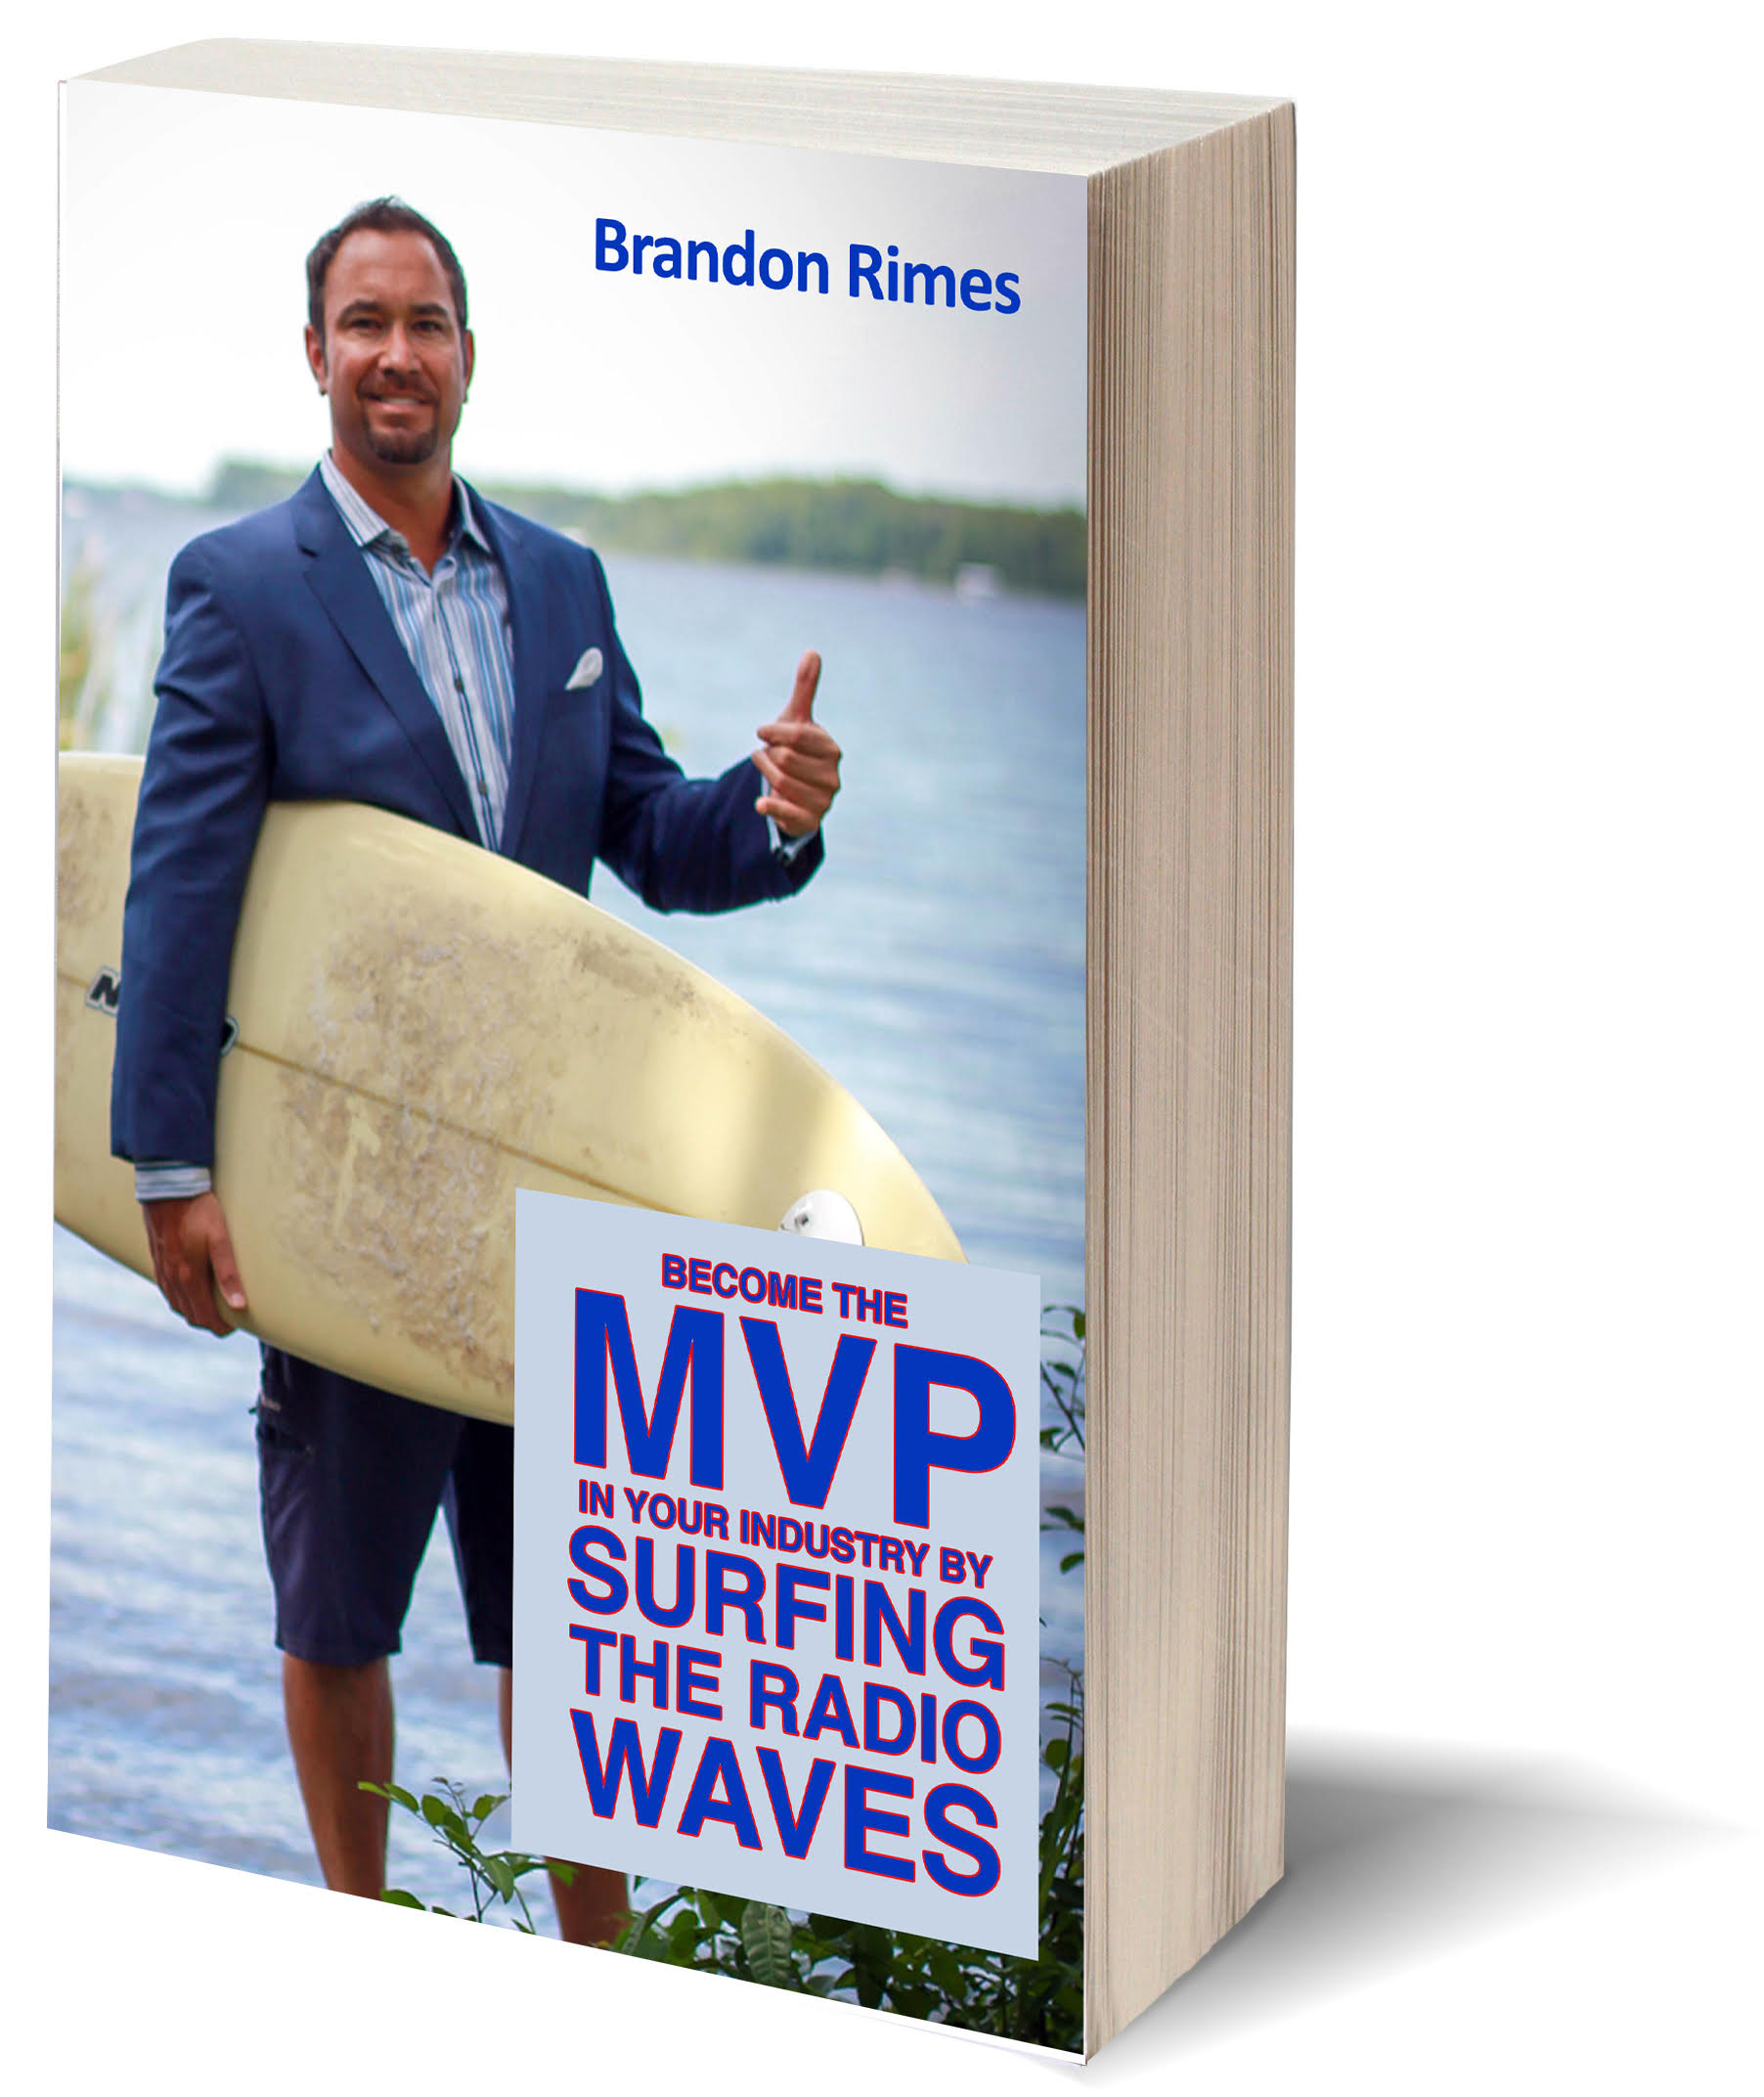 Brandon Rimes is the author of 2 books and a top listing agent in Tampa Bay